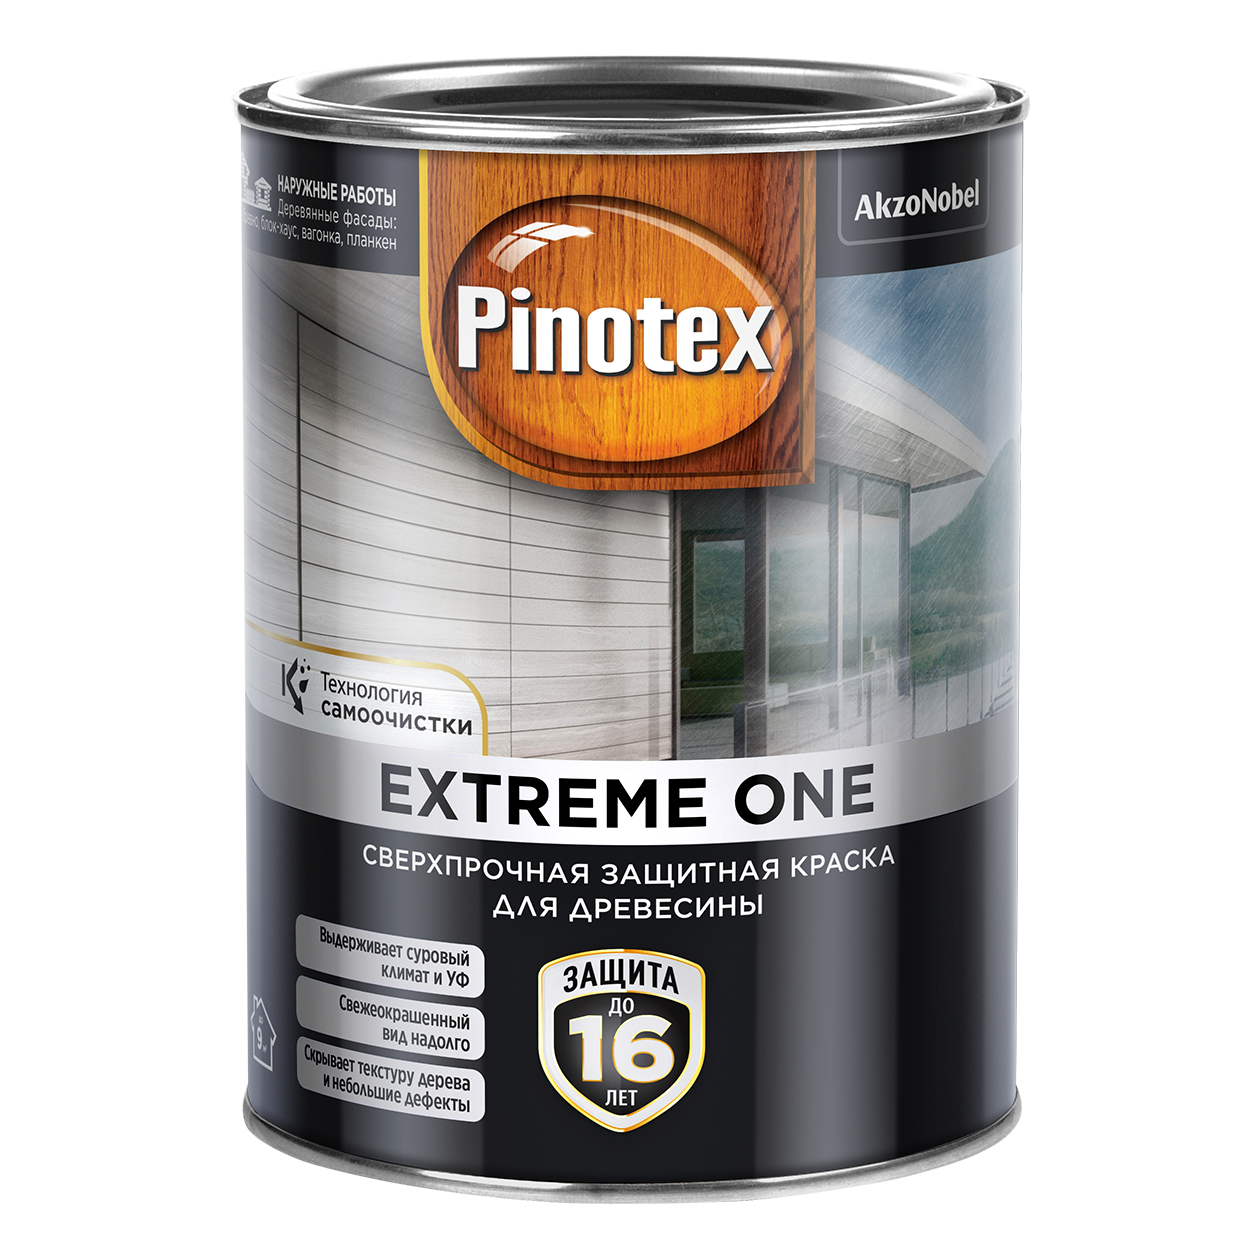 Pinotex Extreme One